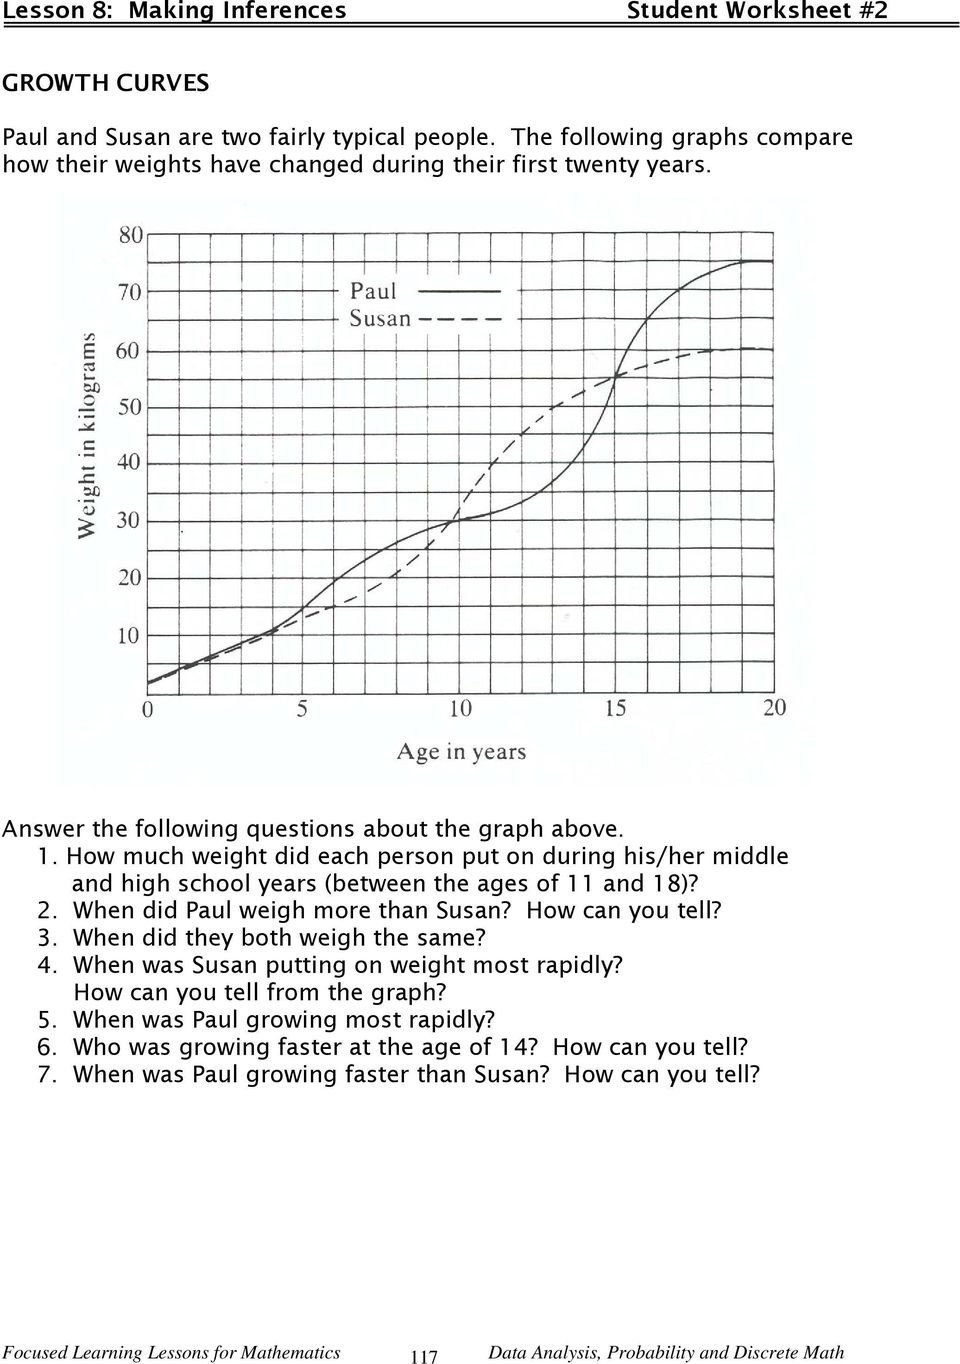 Making Inferences Worksheet Pdf Lesson Making Inferences Pdf Free From Graphs Worksheets